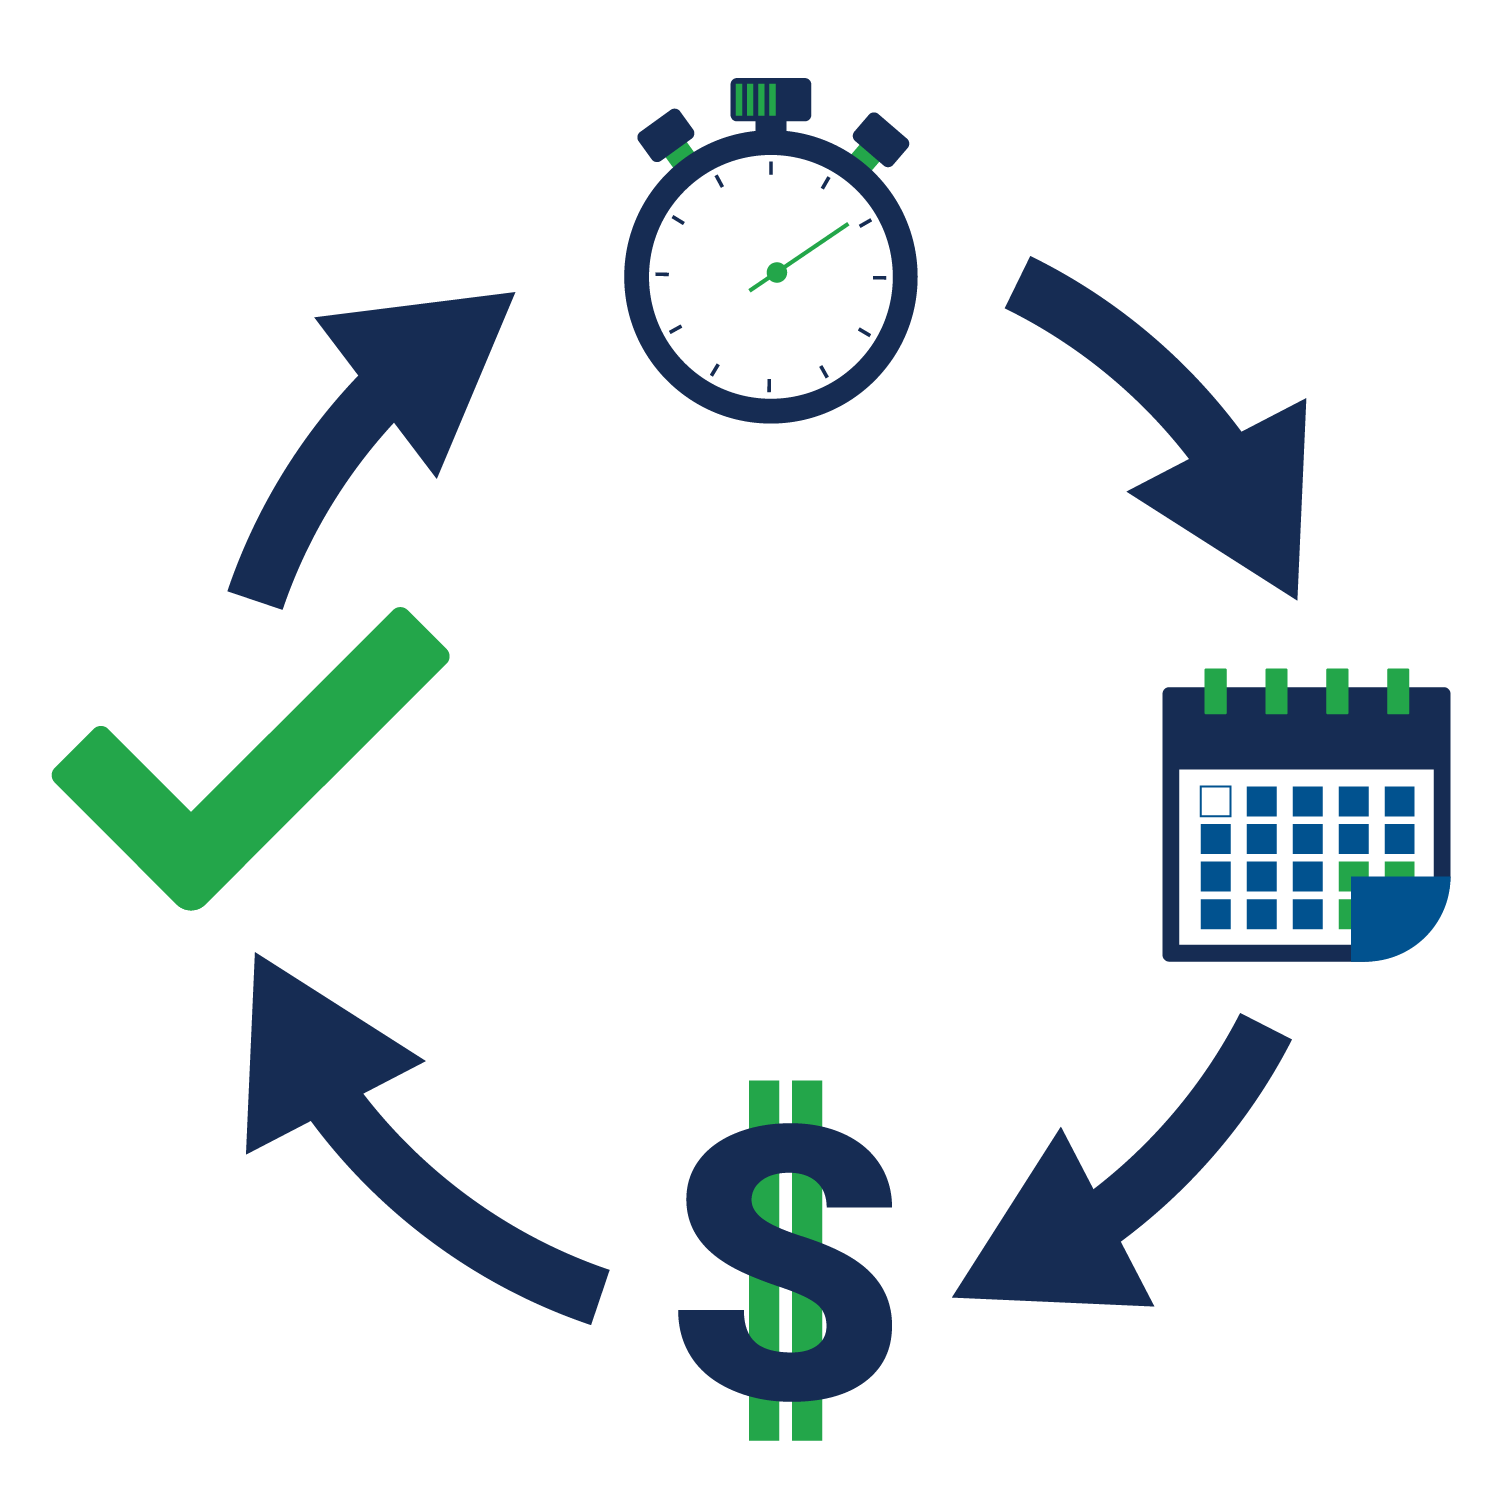 diagram depicting a calendar scheduled release, the cost of the release, and a final check of the release being deployed on time through an analog clock